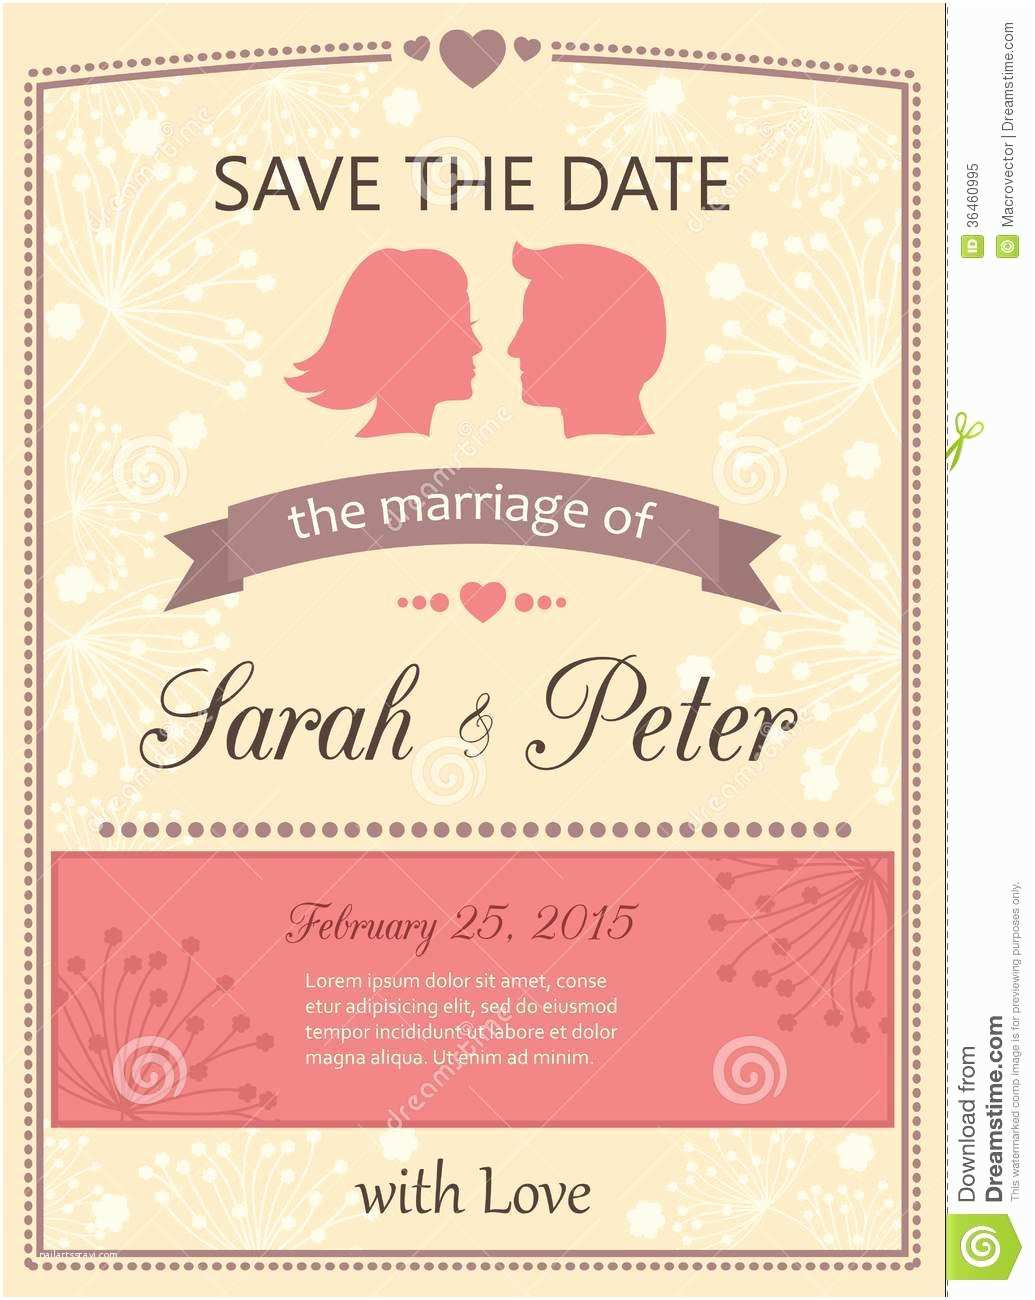 Wedding Invitation Time Save the Date Wedding Invitation Card Stock Vector